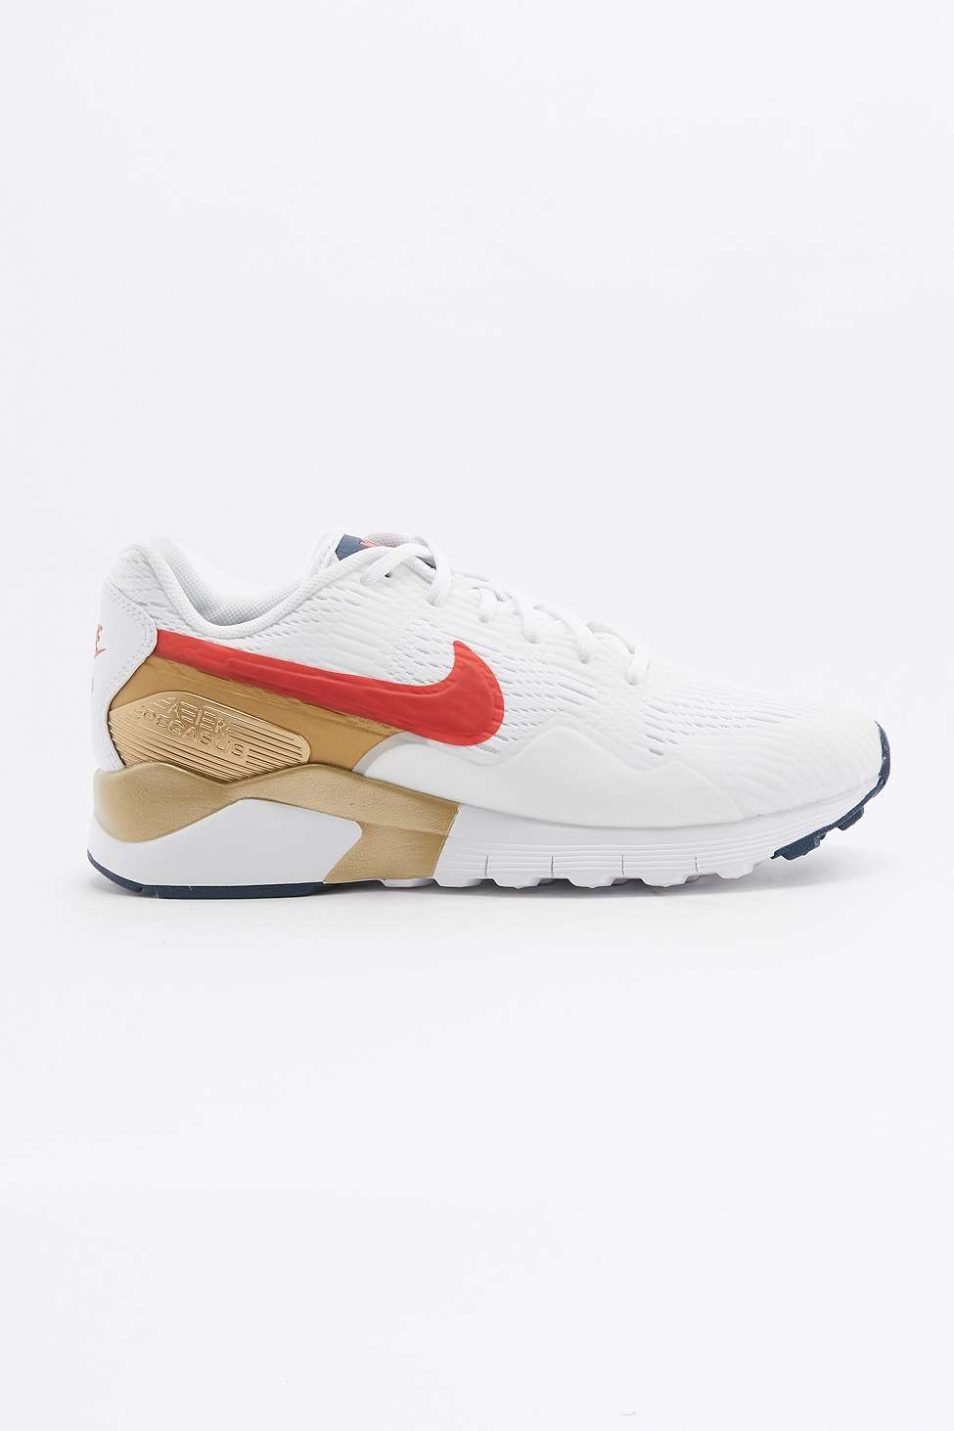 Nike Air Pegasus 92 Red Gold and Blue Trainers 2